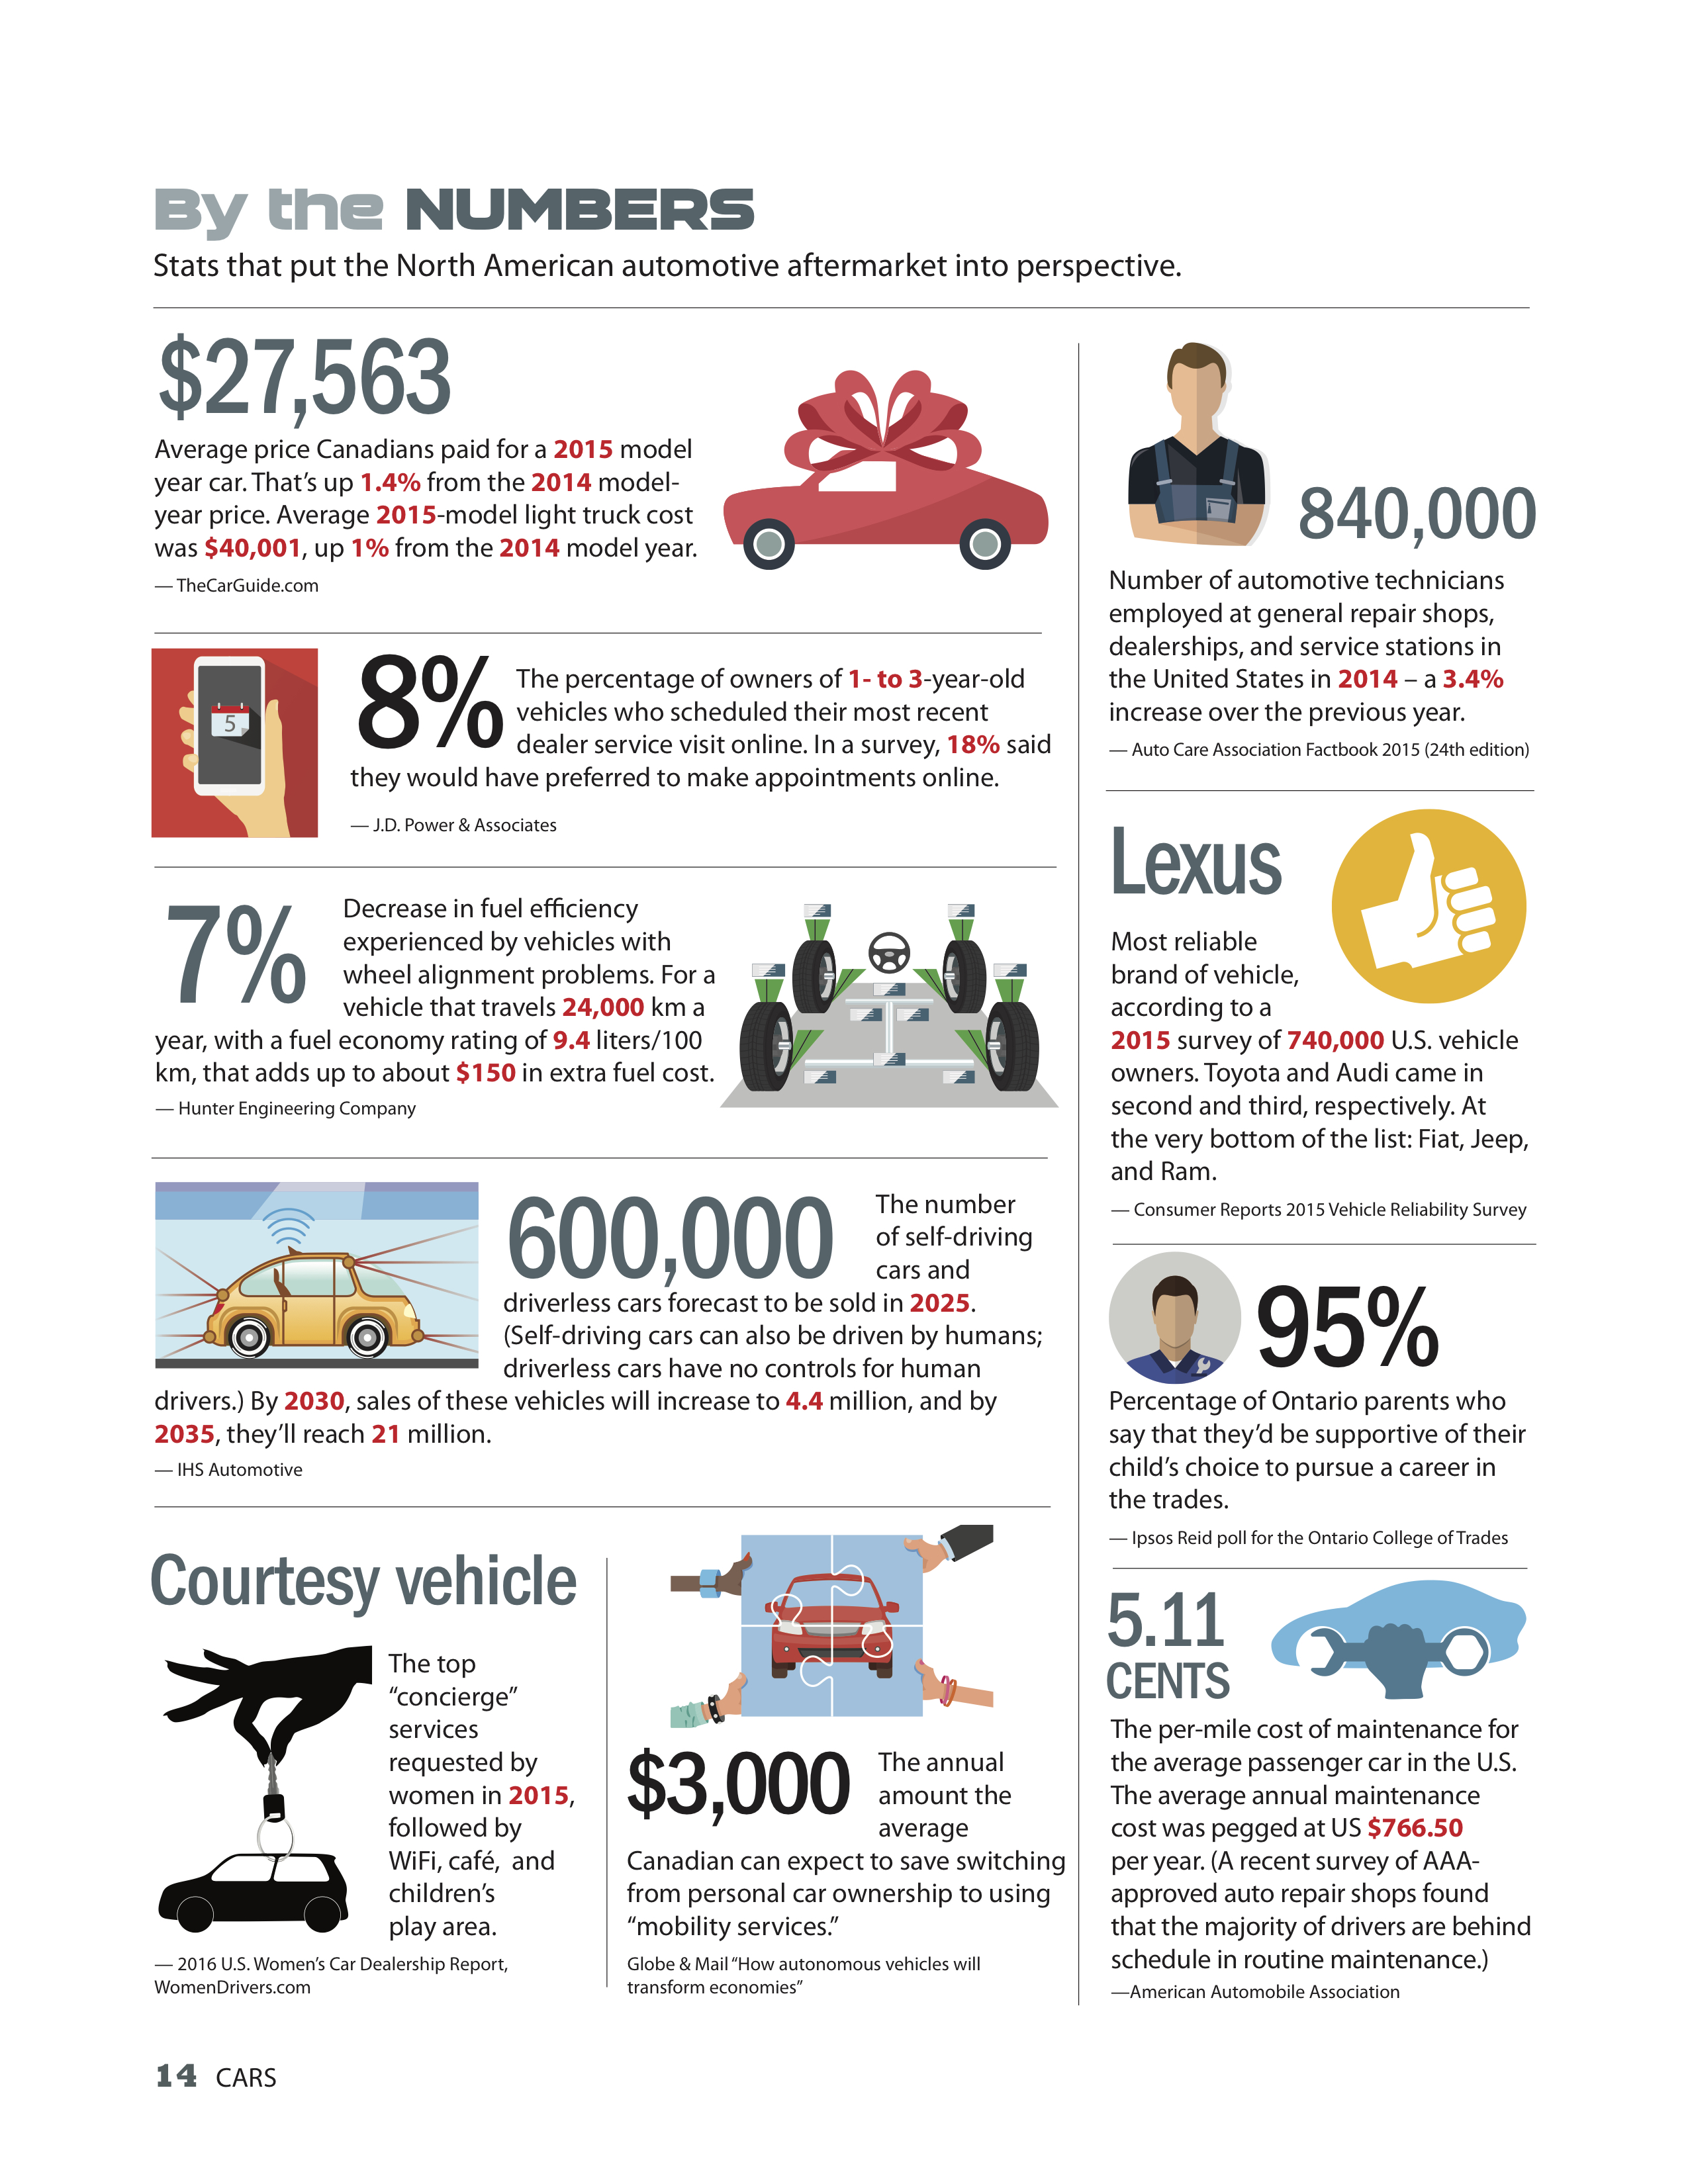 BY THE NUMBERS: Driverless car sales and more... - Auto Service World